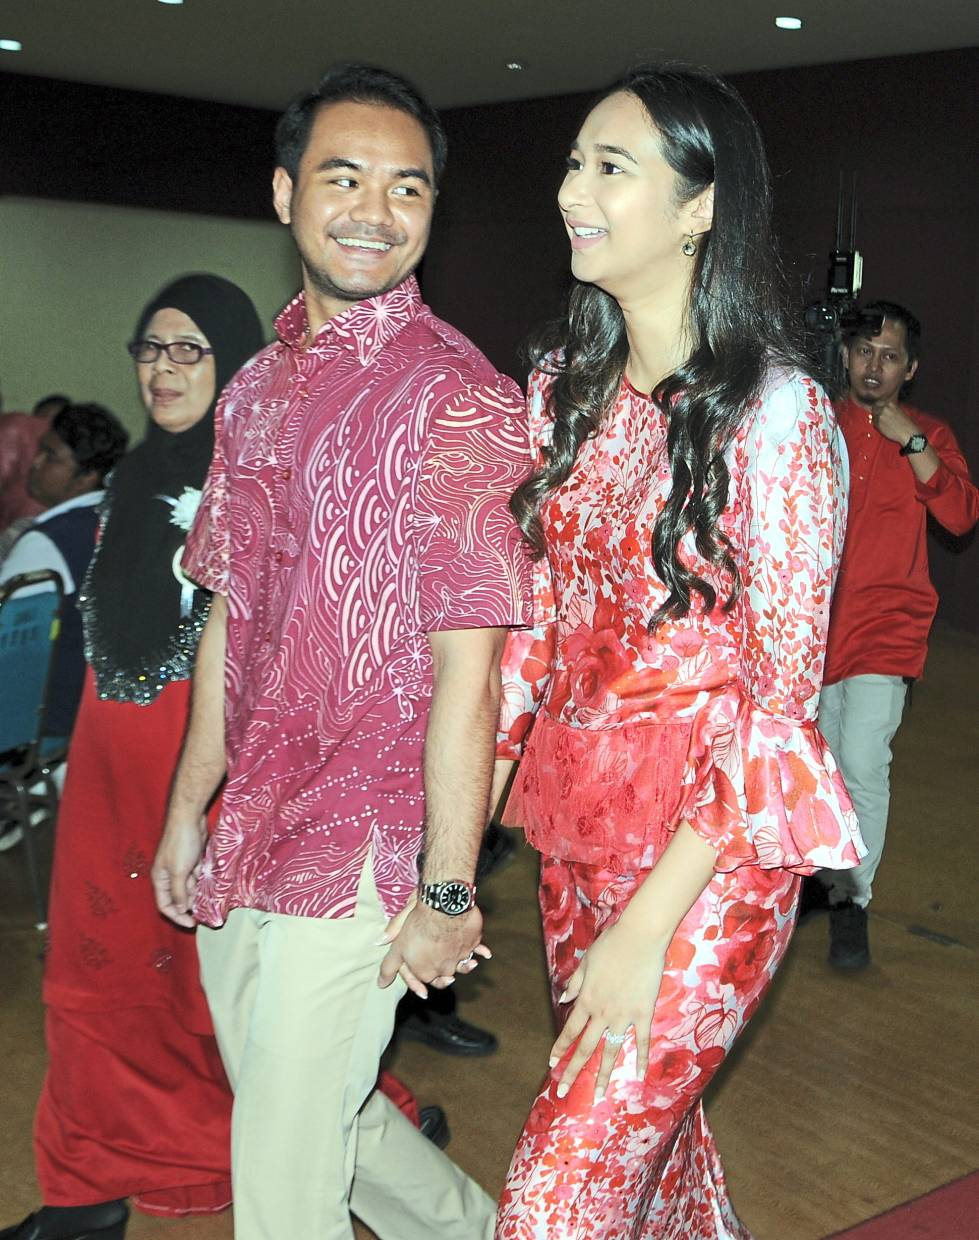 Meera and husband Mohamad Ezran arriving at the feast which is also held to celebrate their marriage.